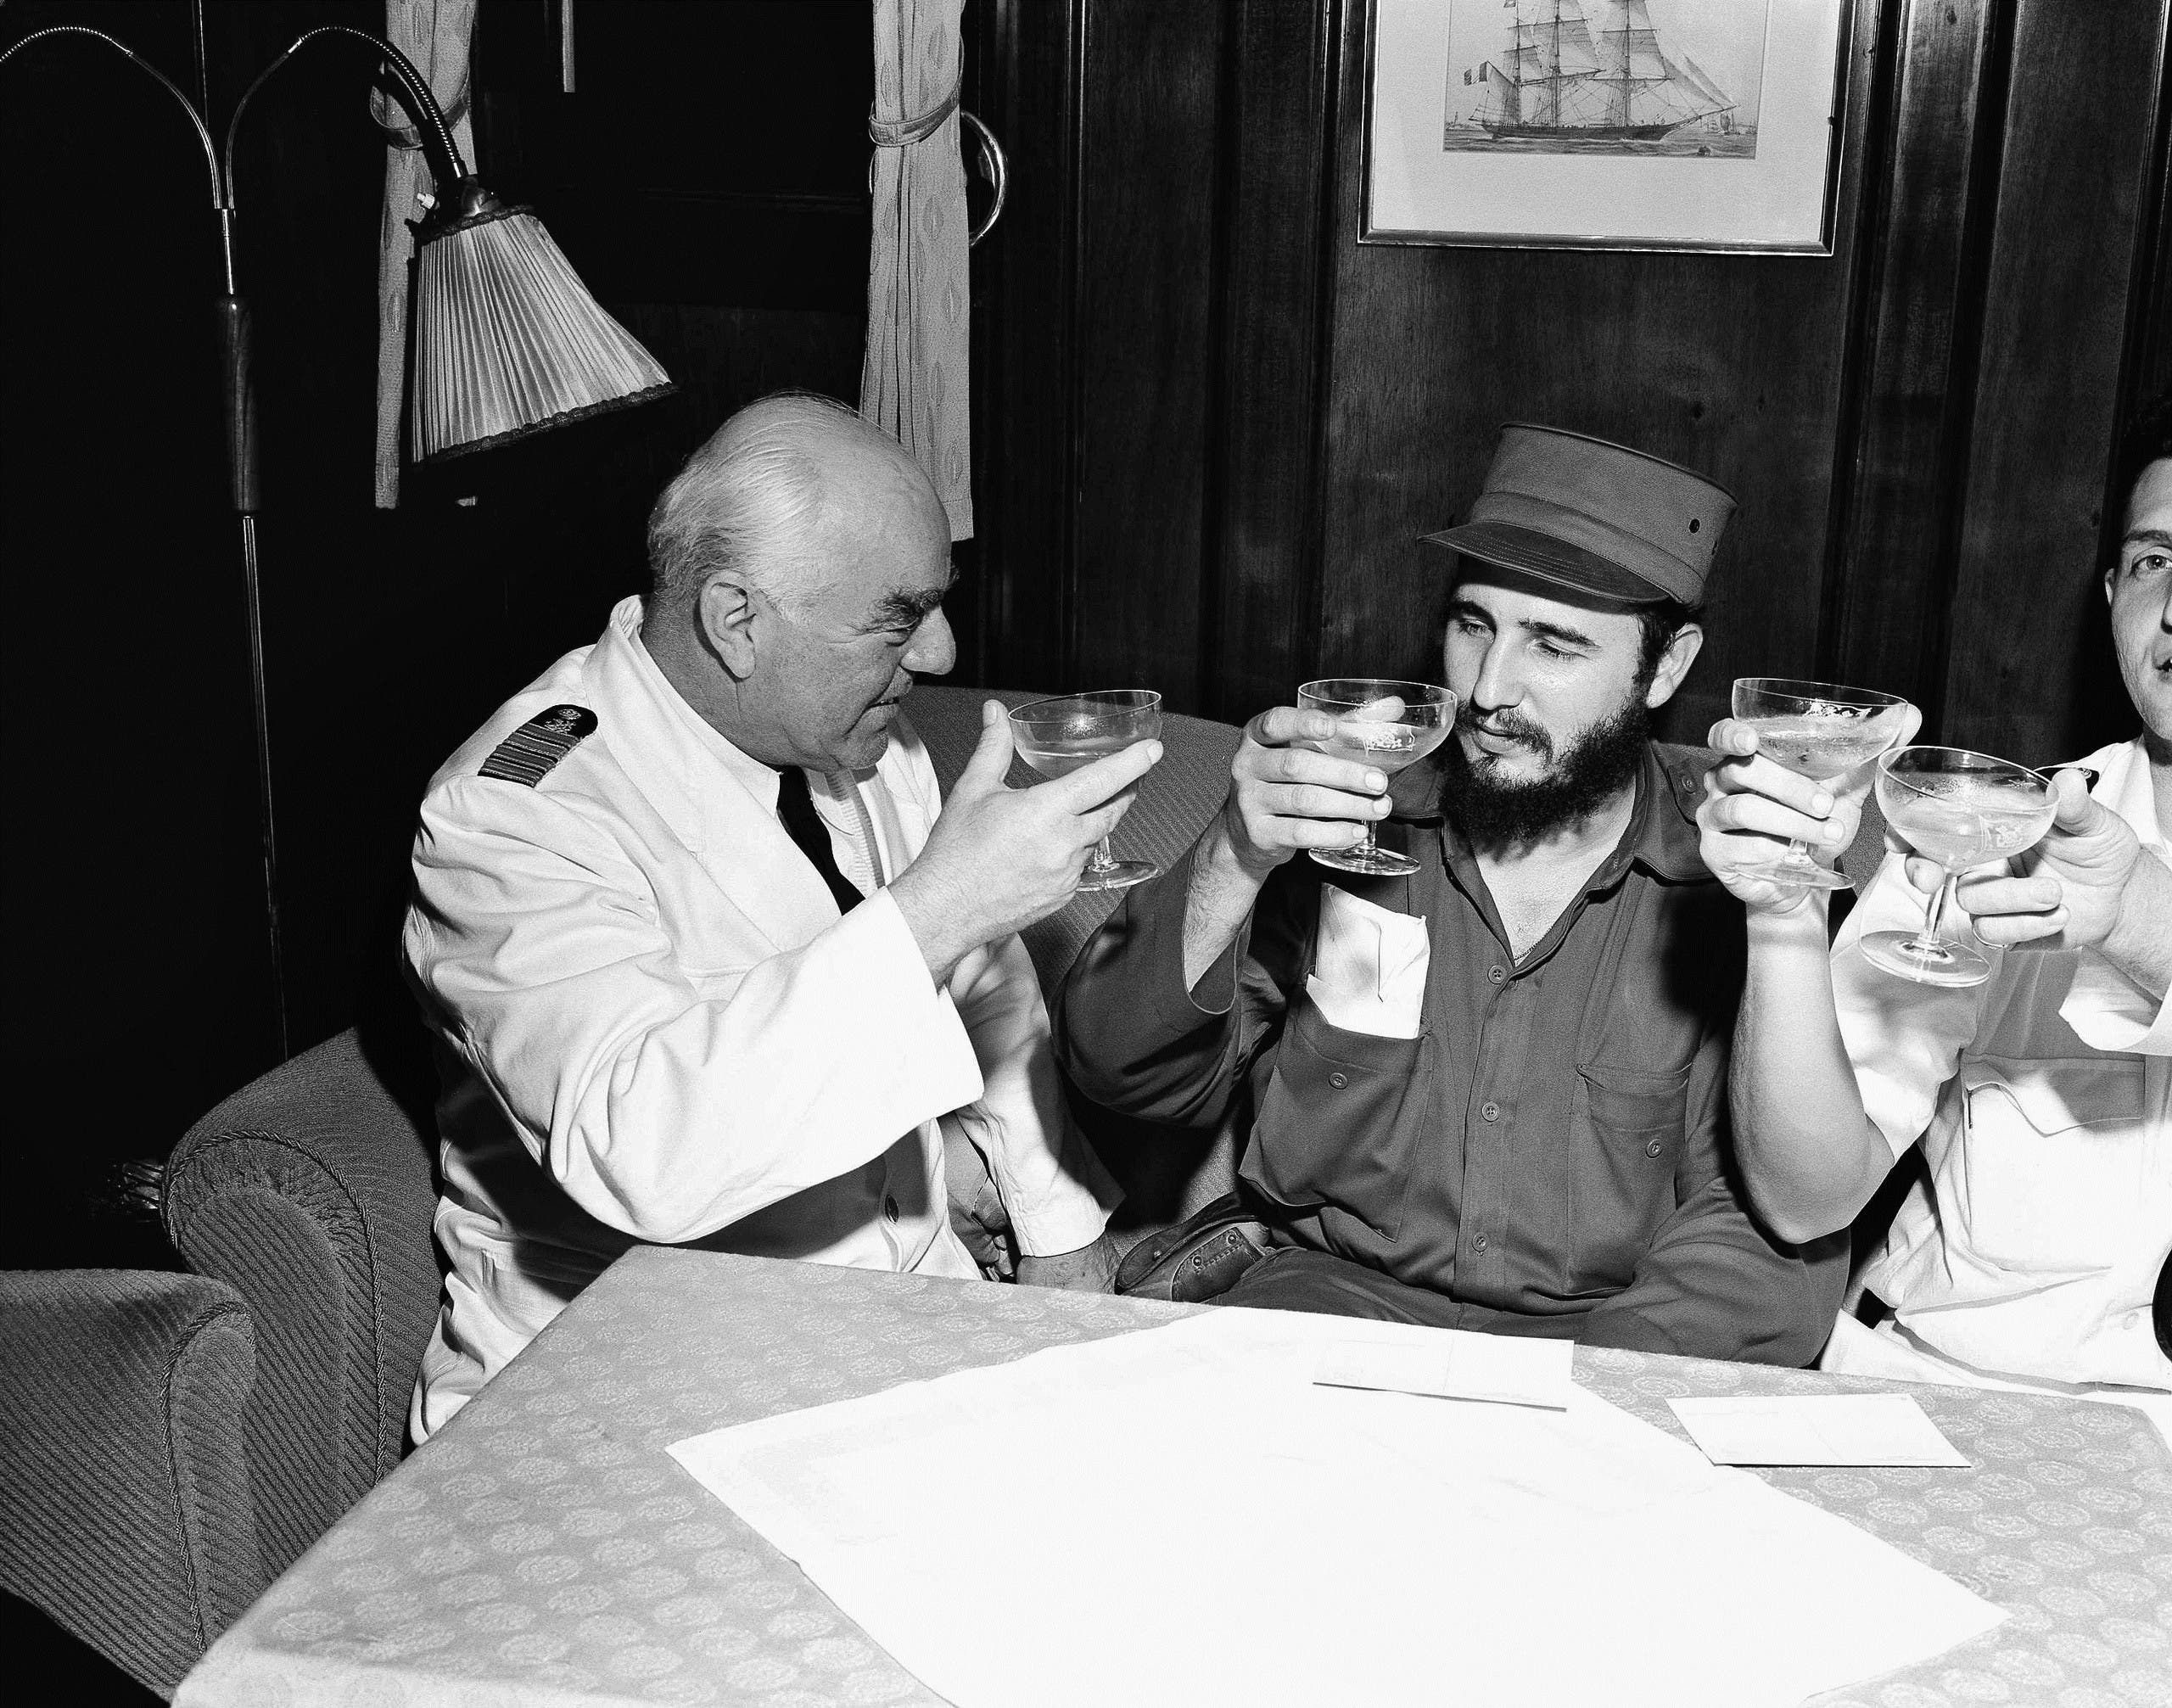 Captain Heinrich Lorenz, left, of cruise ship MS Berlin, proposes a toast to the success of Fidel Castro's government in Cuba, April 15, 1954, Havana, Cuba. Castro visited the North German Lloyd ship after it landed in Havana from New York. (AP)